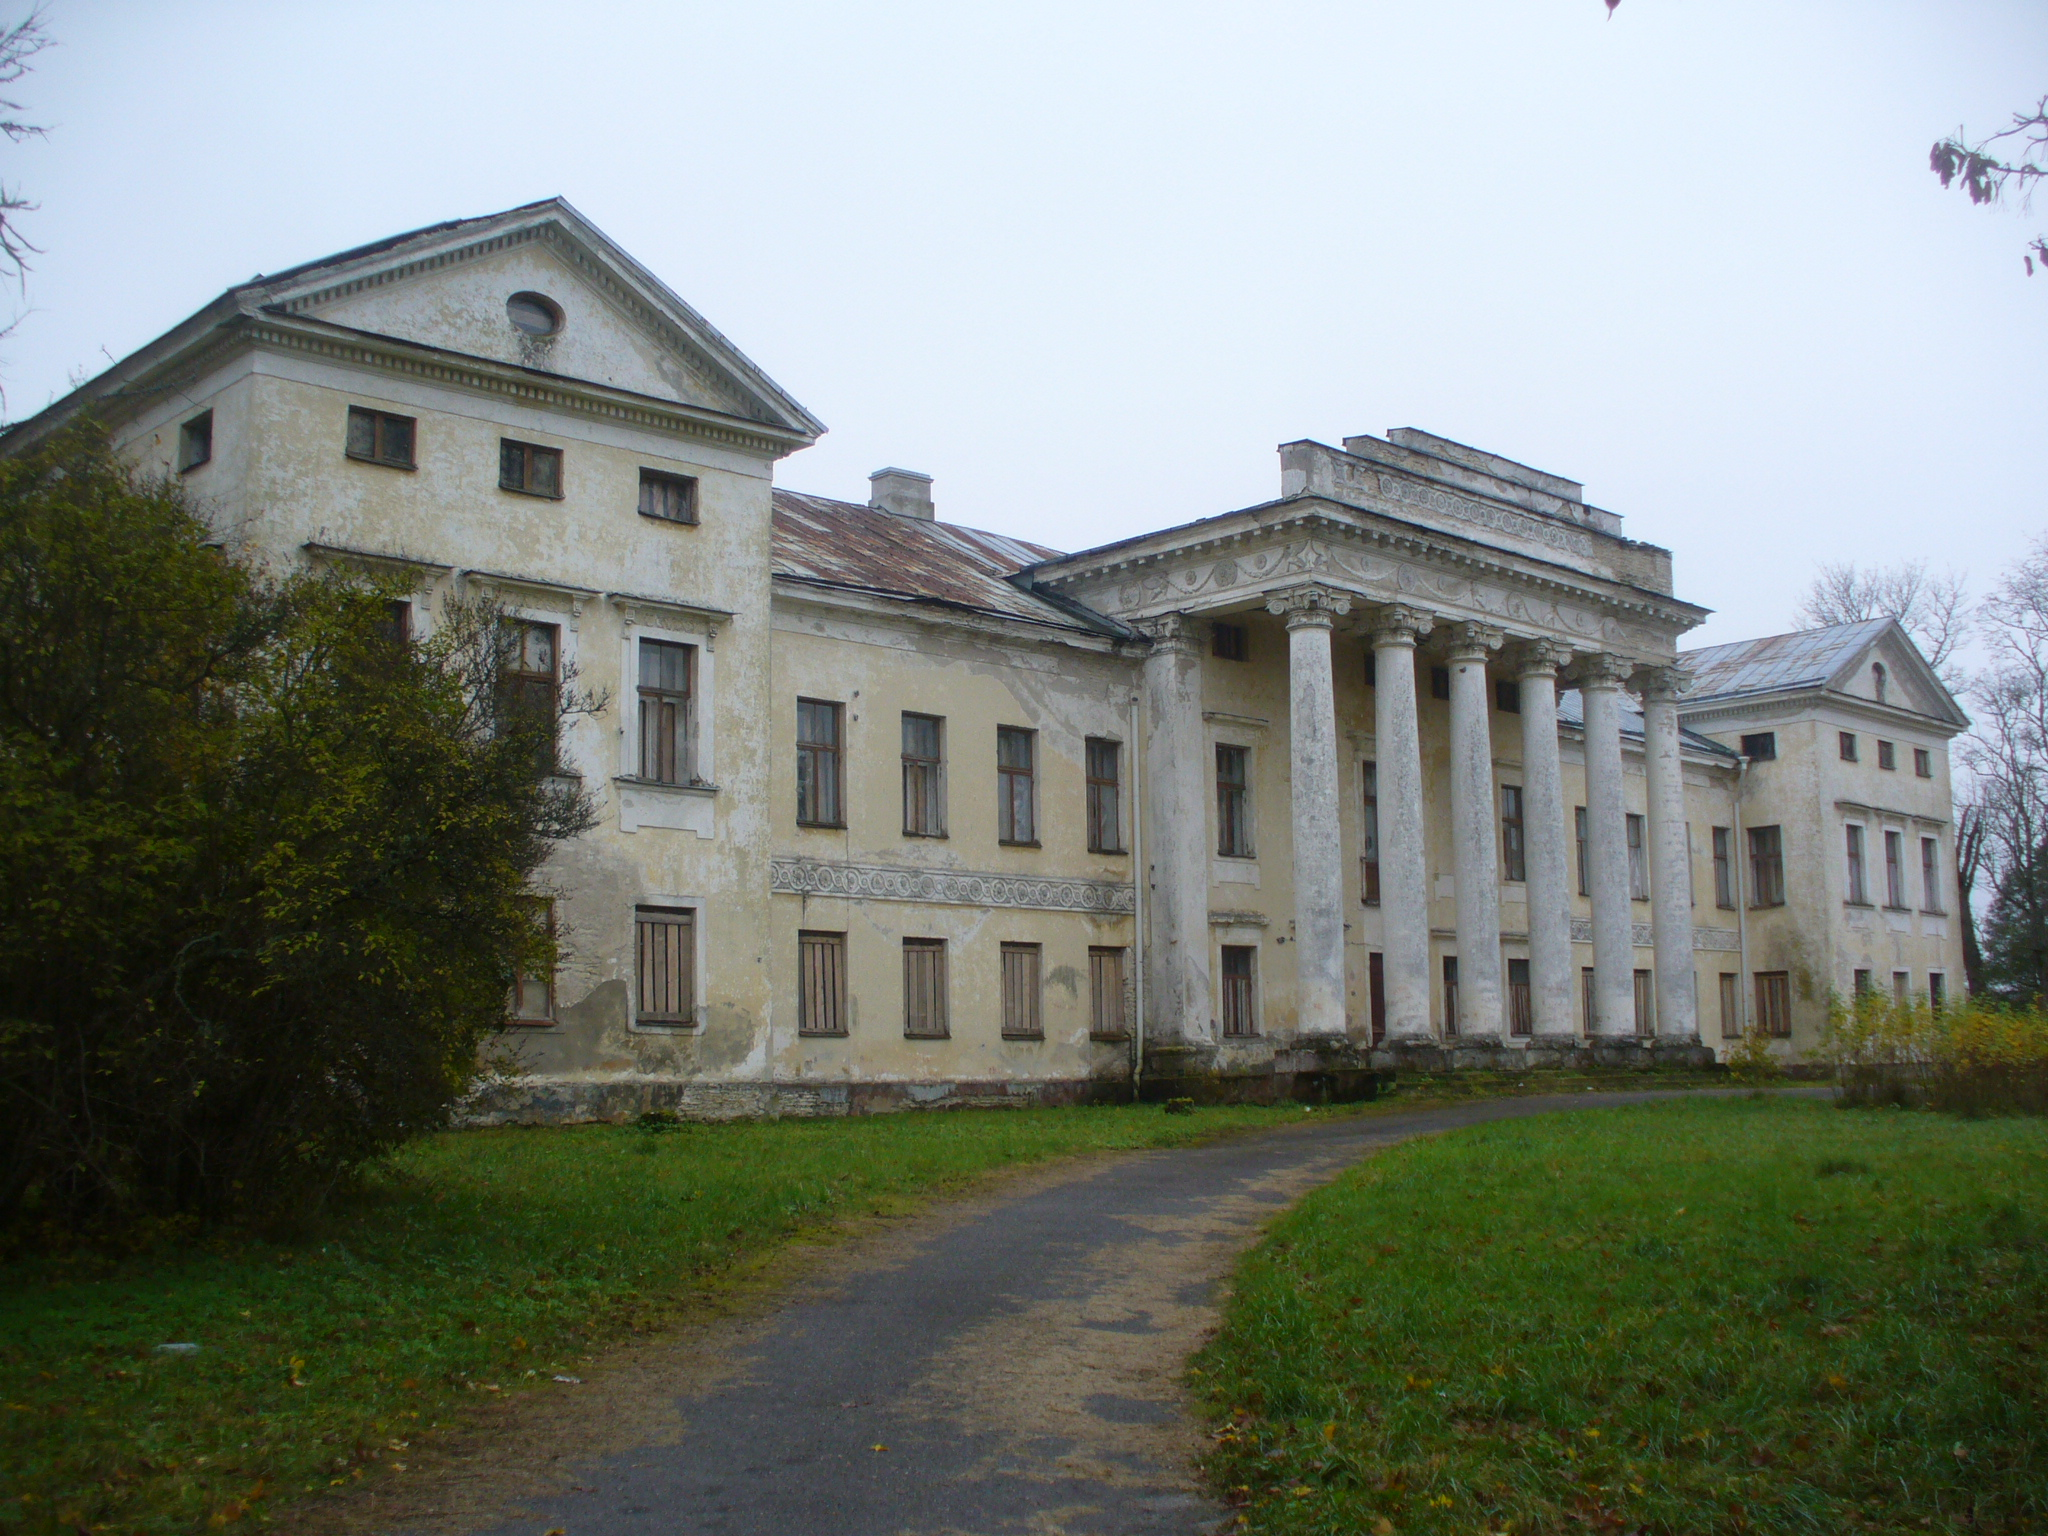 File:Riisipere manor house 13Oct2008.jpg - Wikimedia Commons